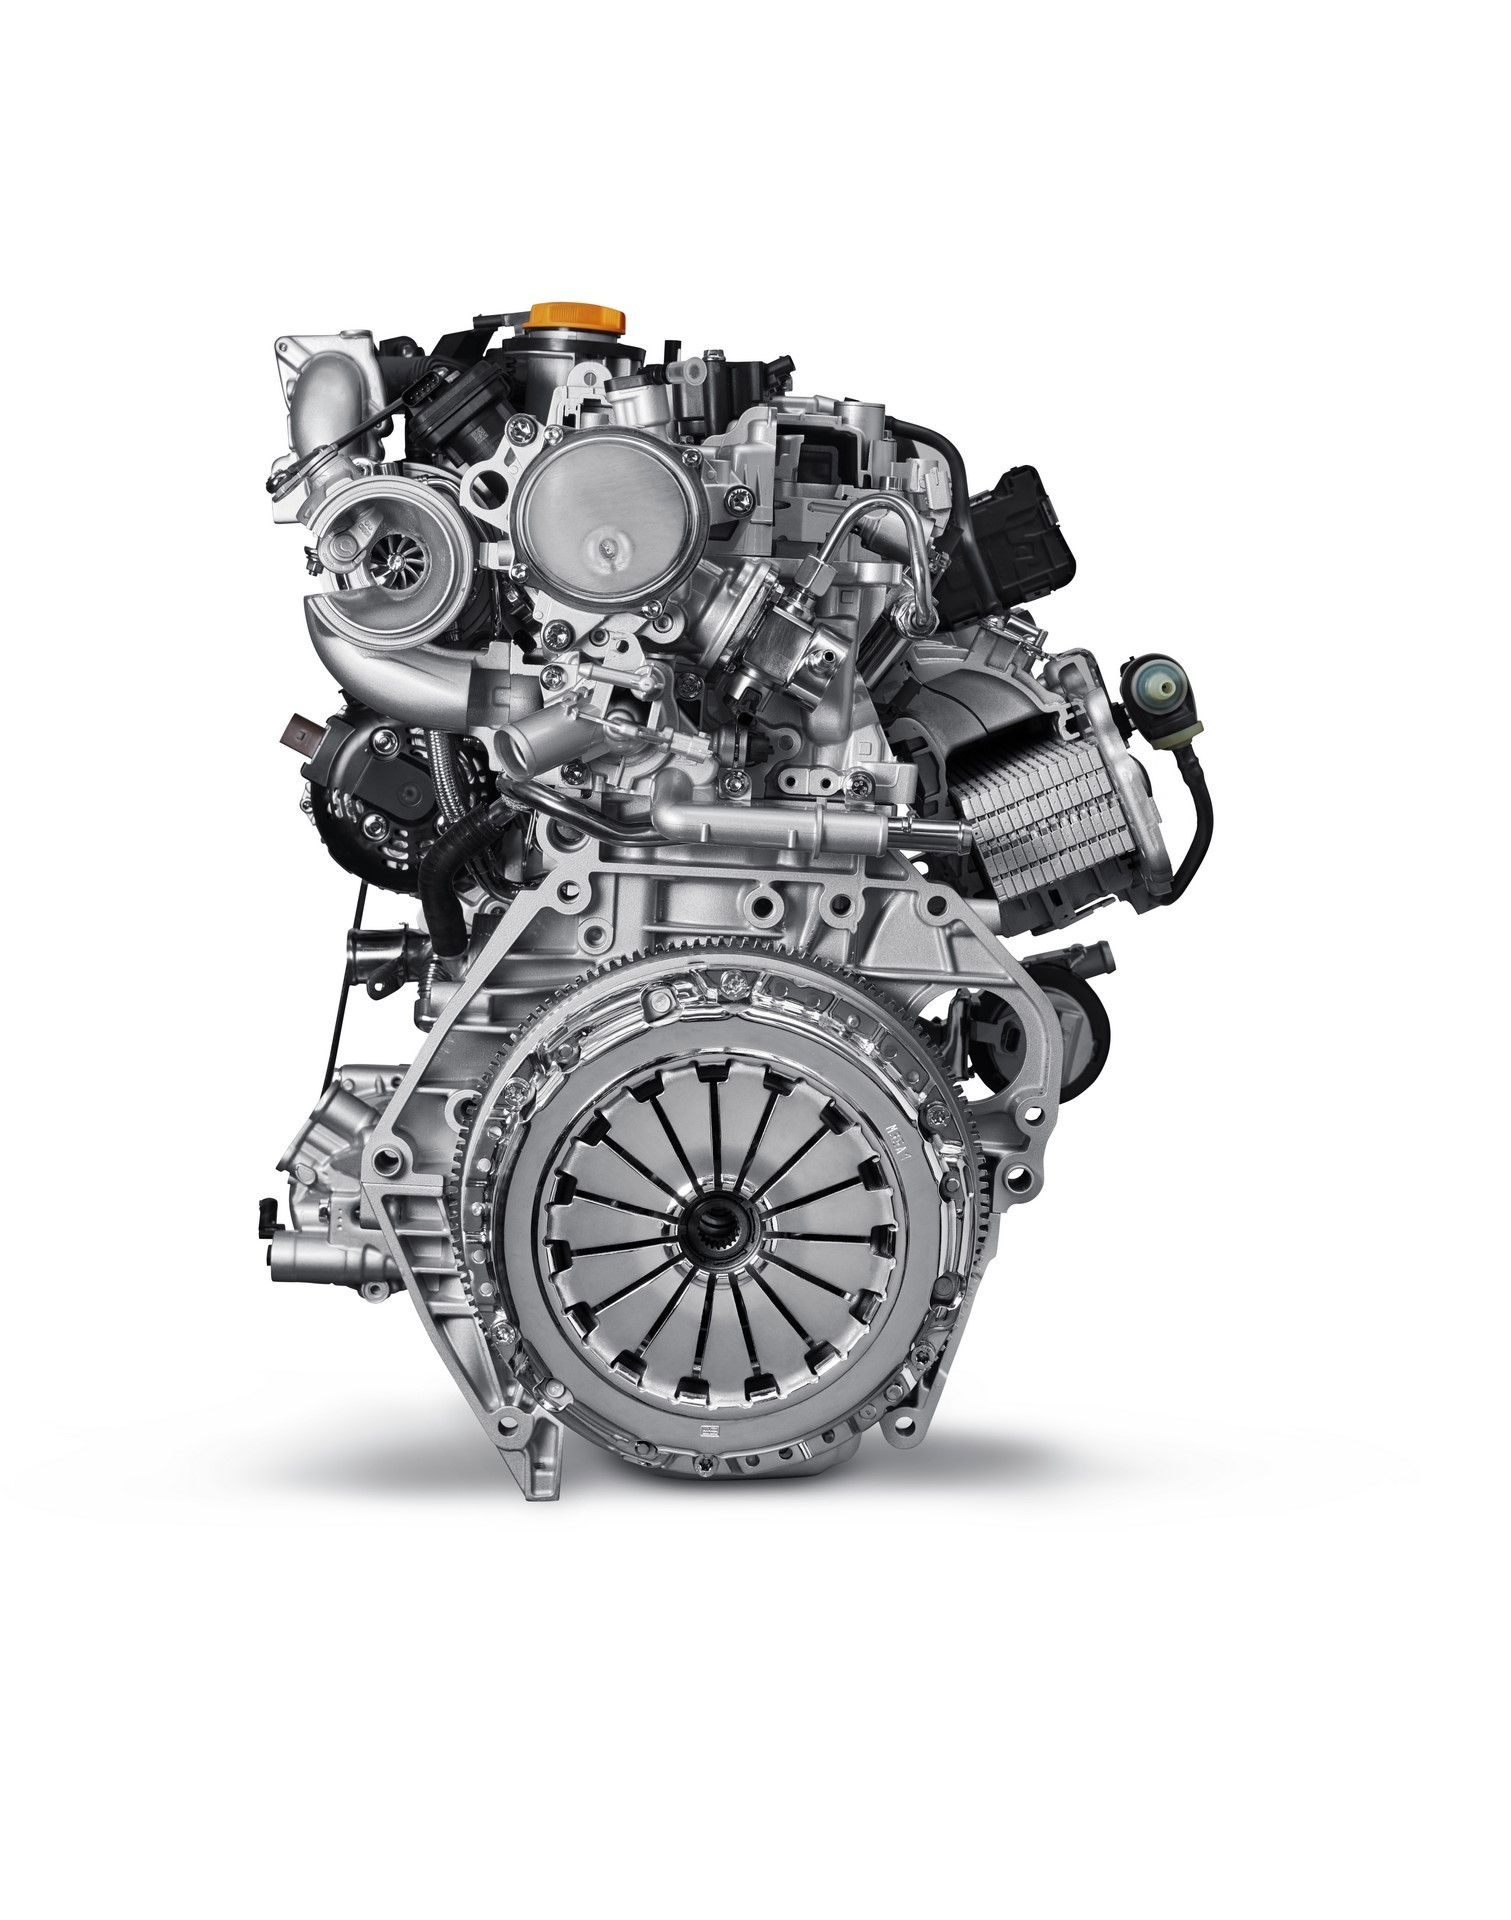 180828_Fiat_New-10L-Turbo-3-cylinder-120HP_05